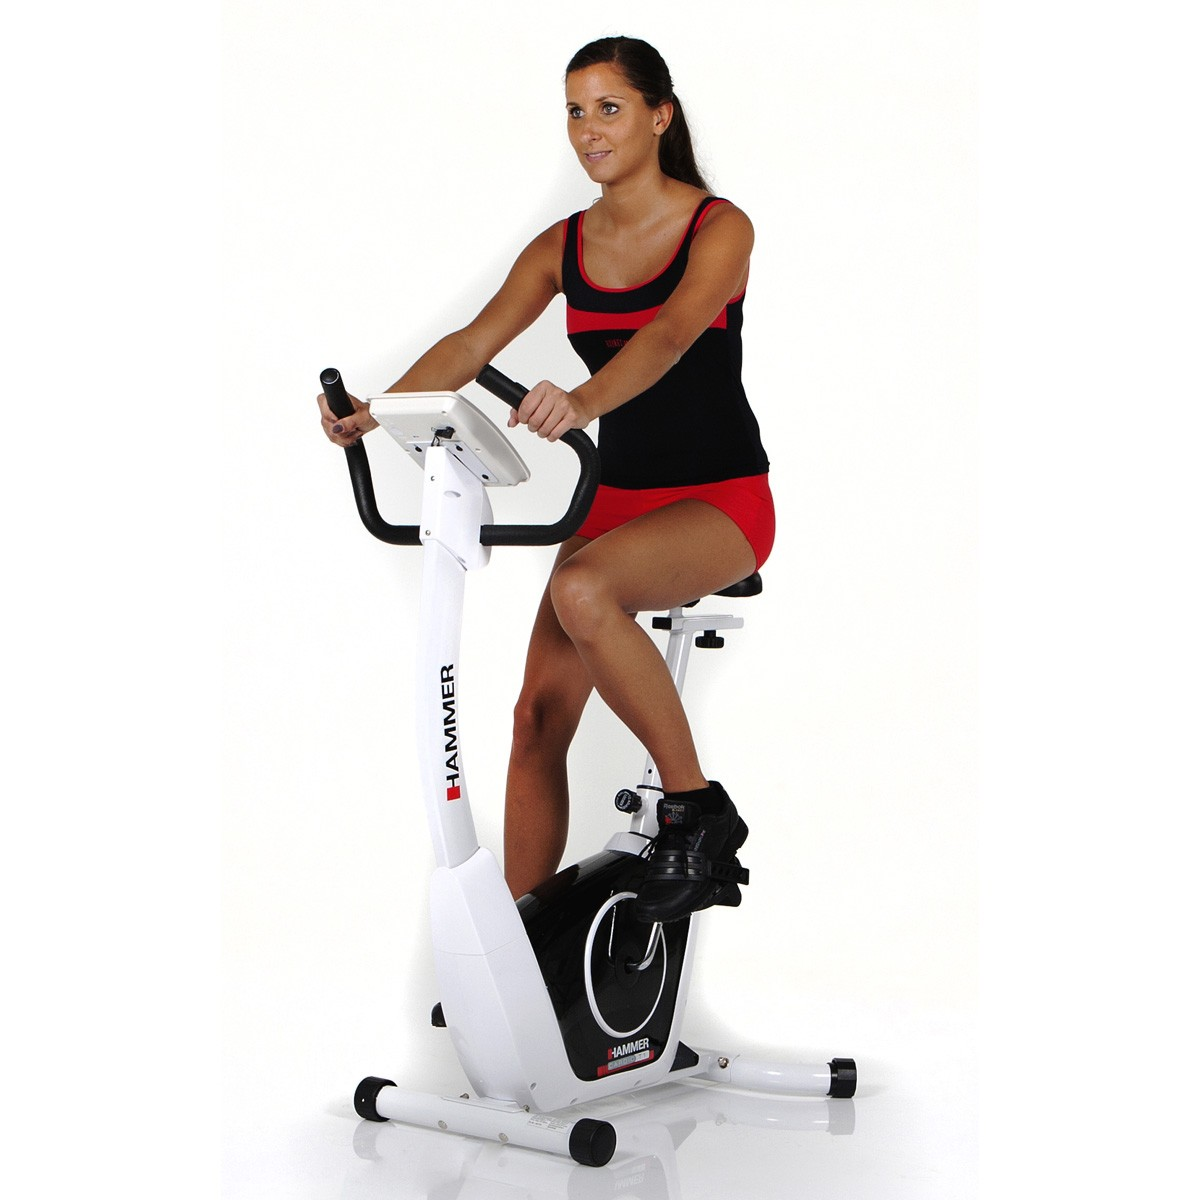 Hammer exercise bike cardio t1 for Ab salon equipment reviews